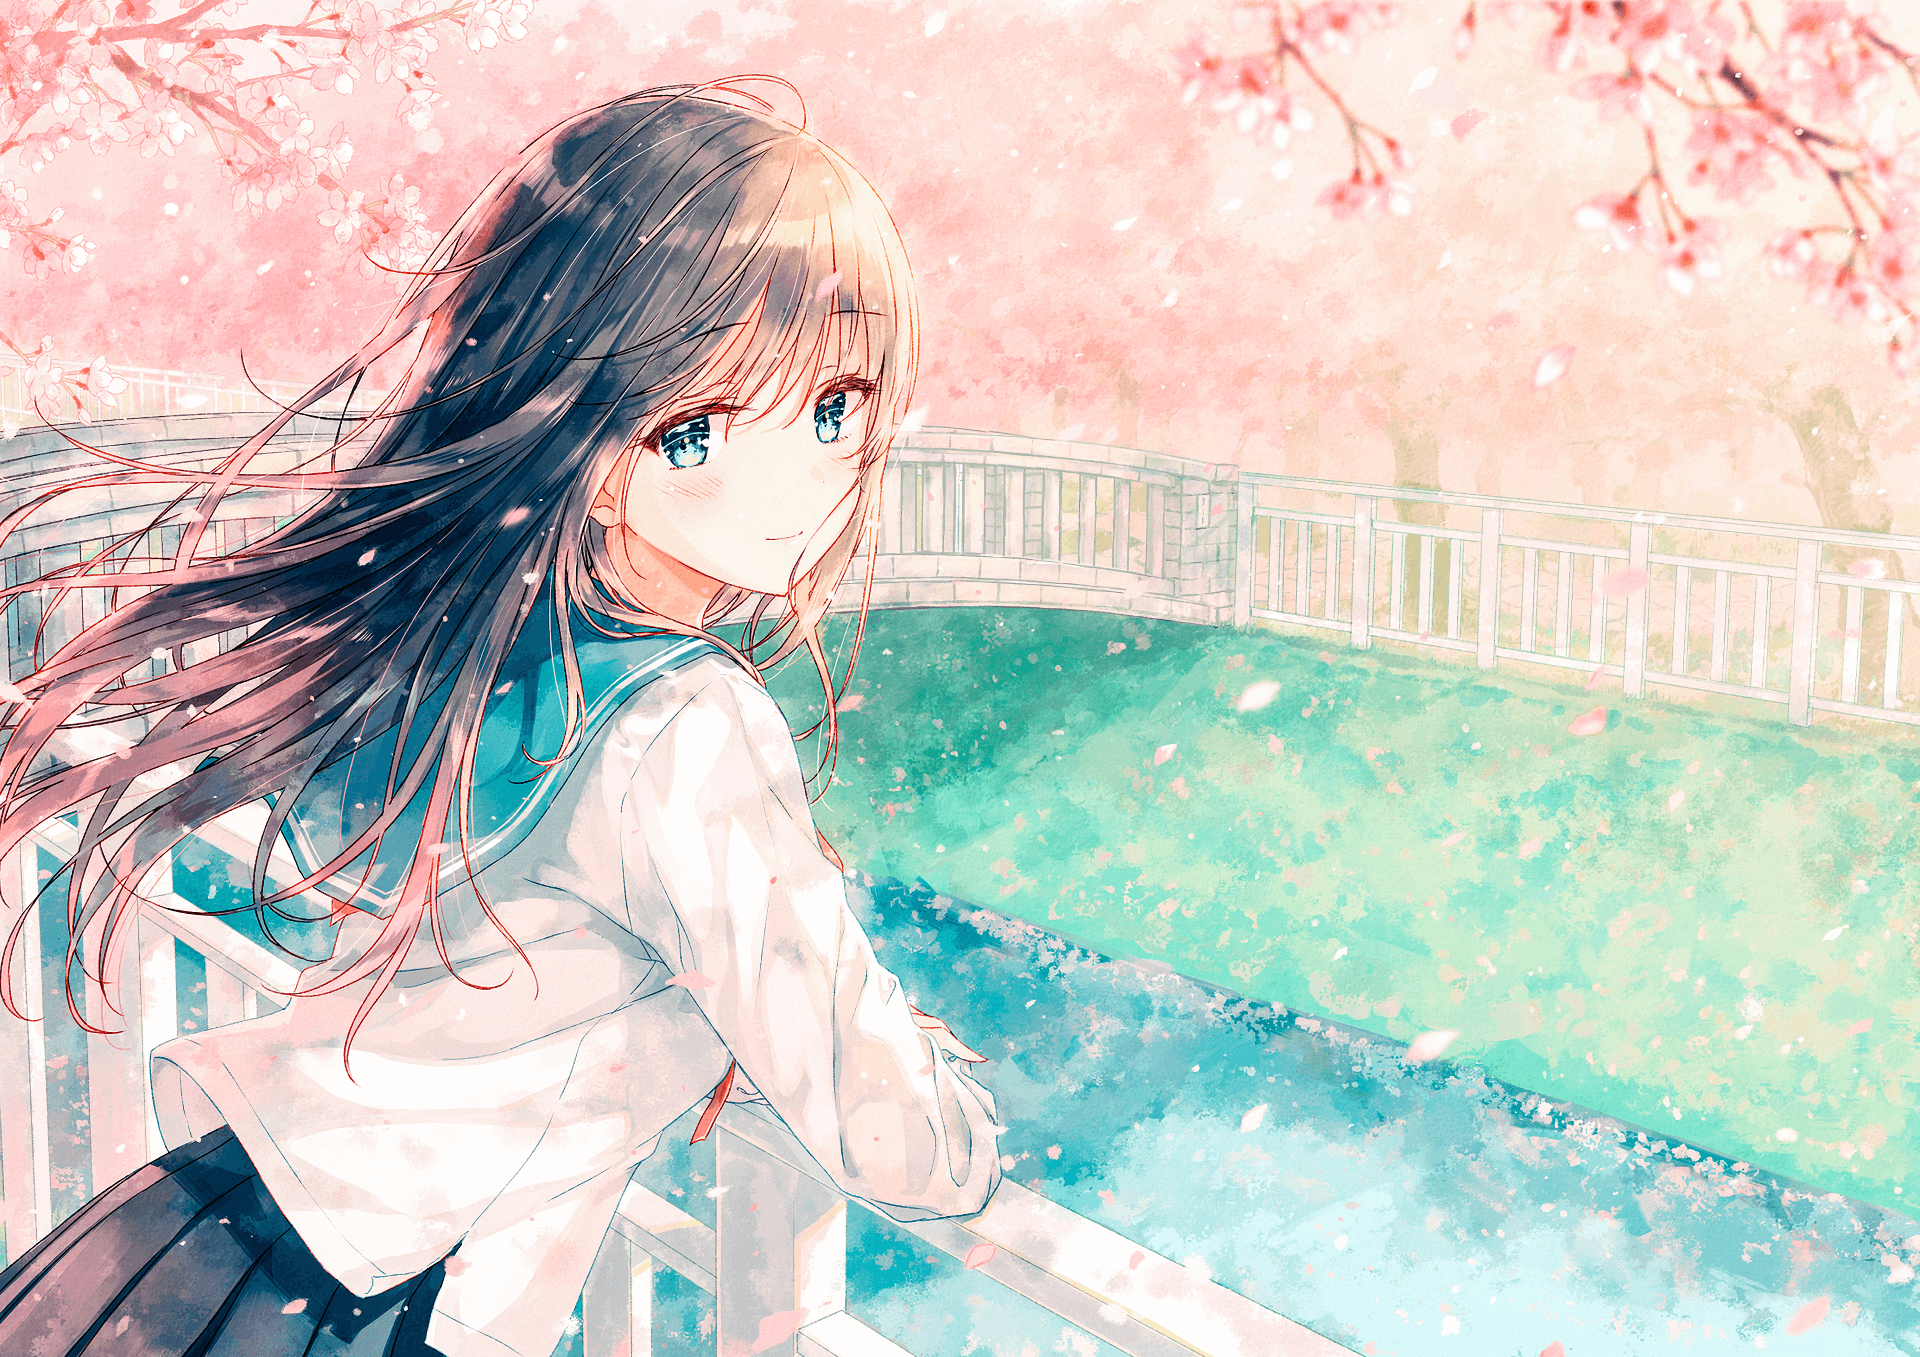 Anime Girl With Brown Hair Wallpapers - Wallpaper Cave